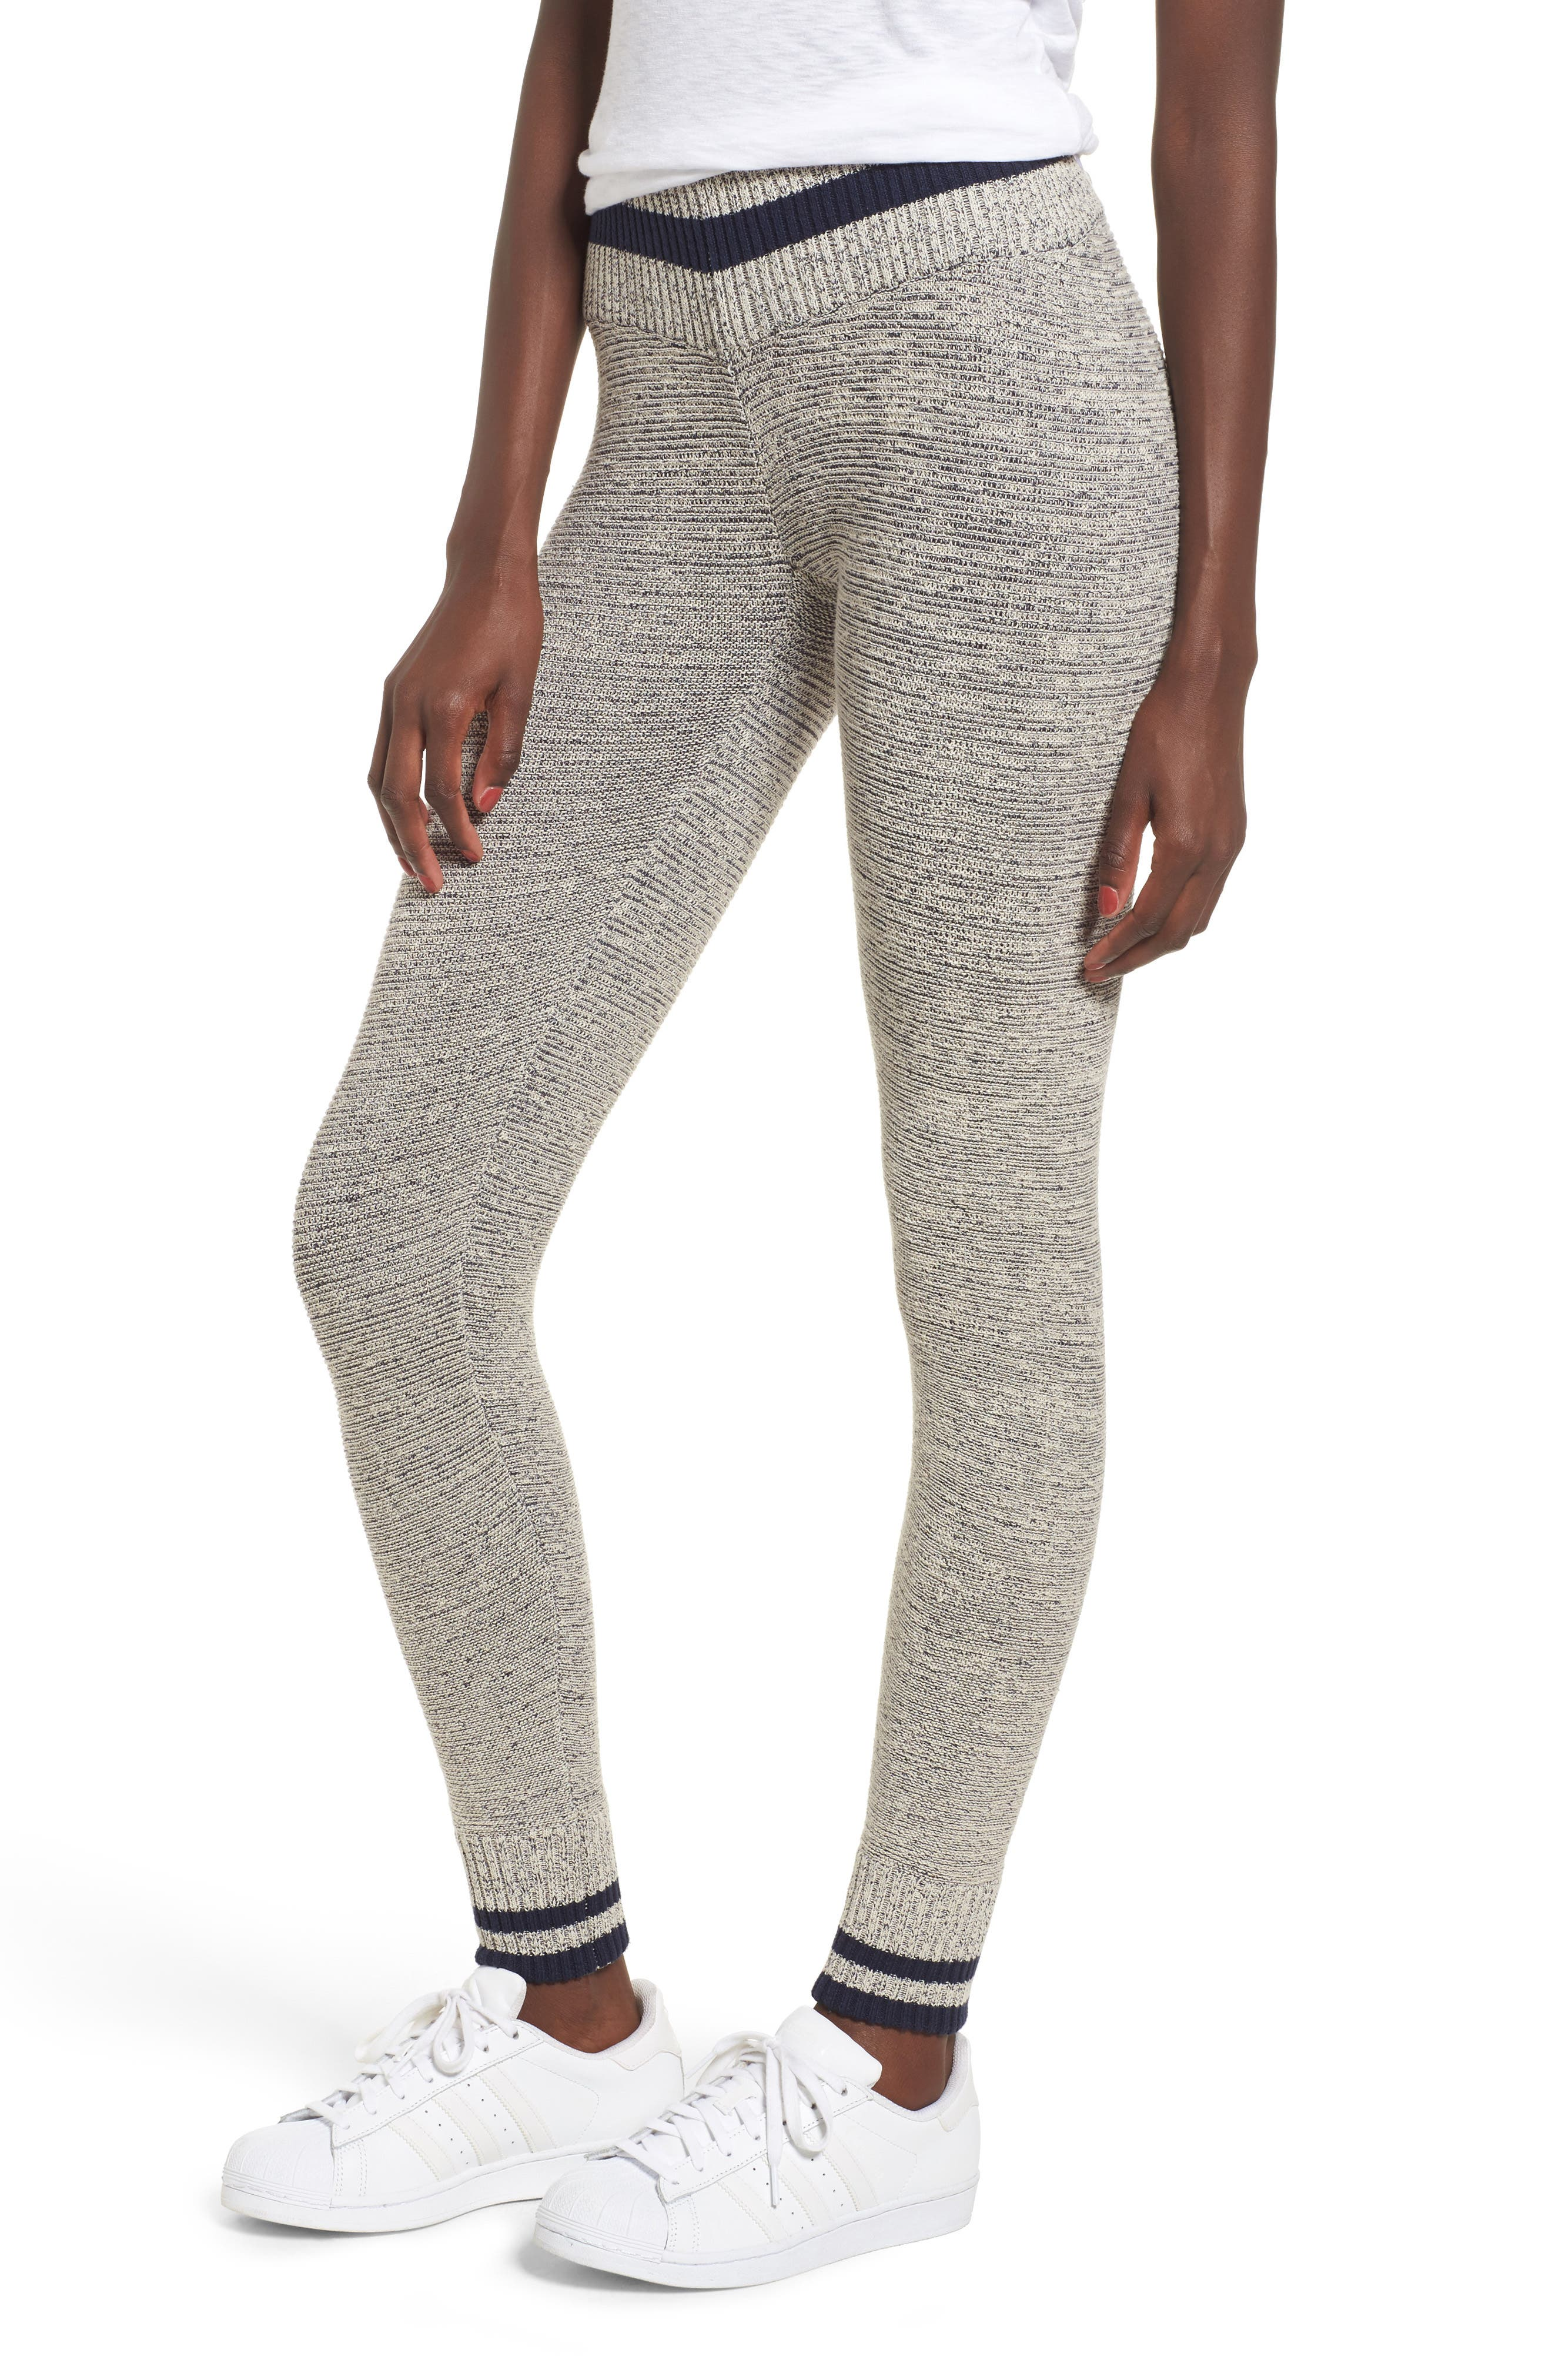 Loomed Knit Leggings,                         Main,                         color, Heather Grey